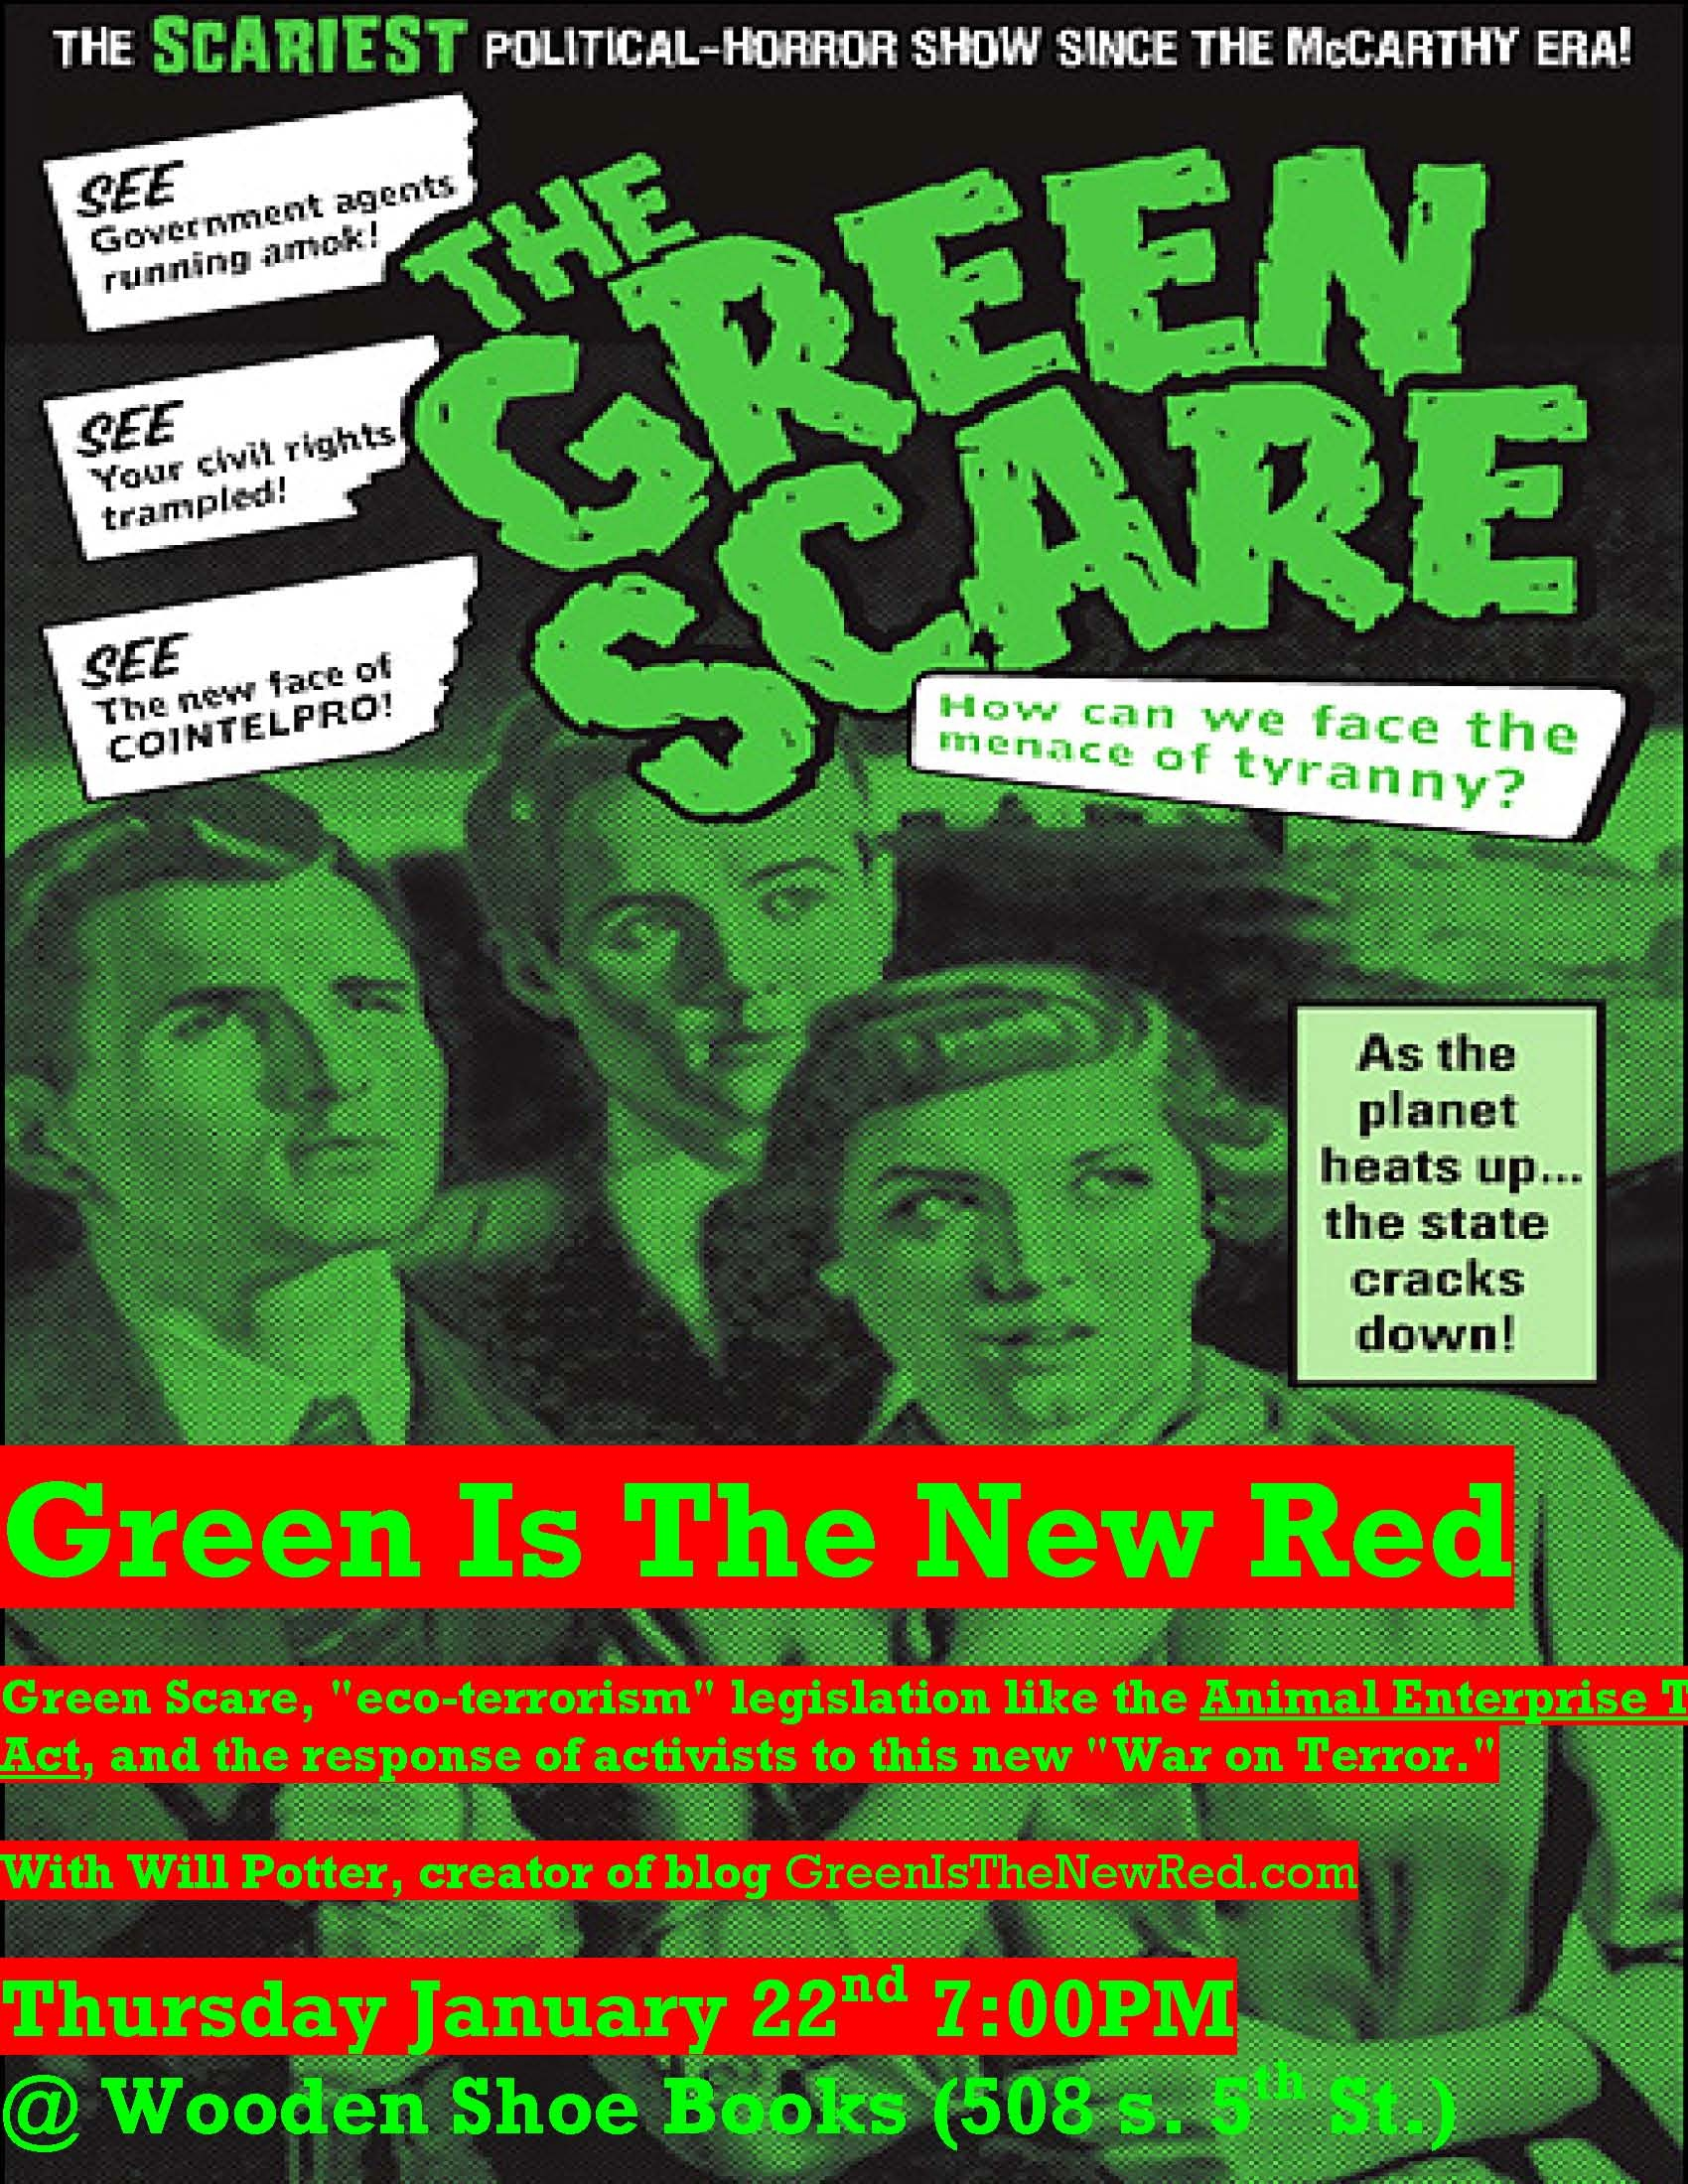 Green Scare flier for Will Potter speaking event at Wooden Shoe books in Philadelphia.